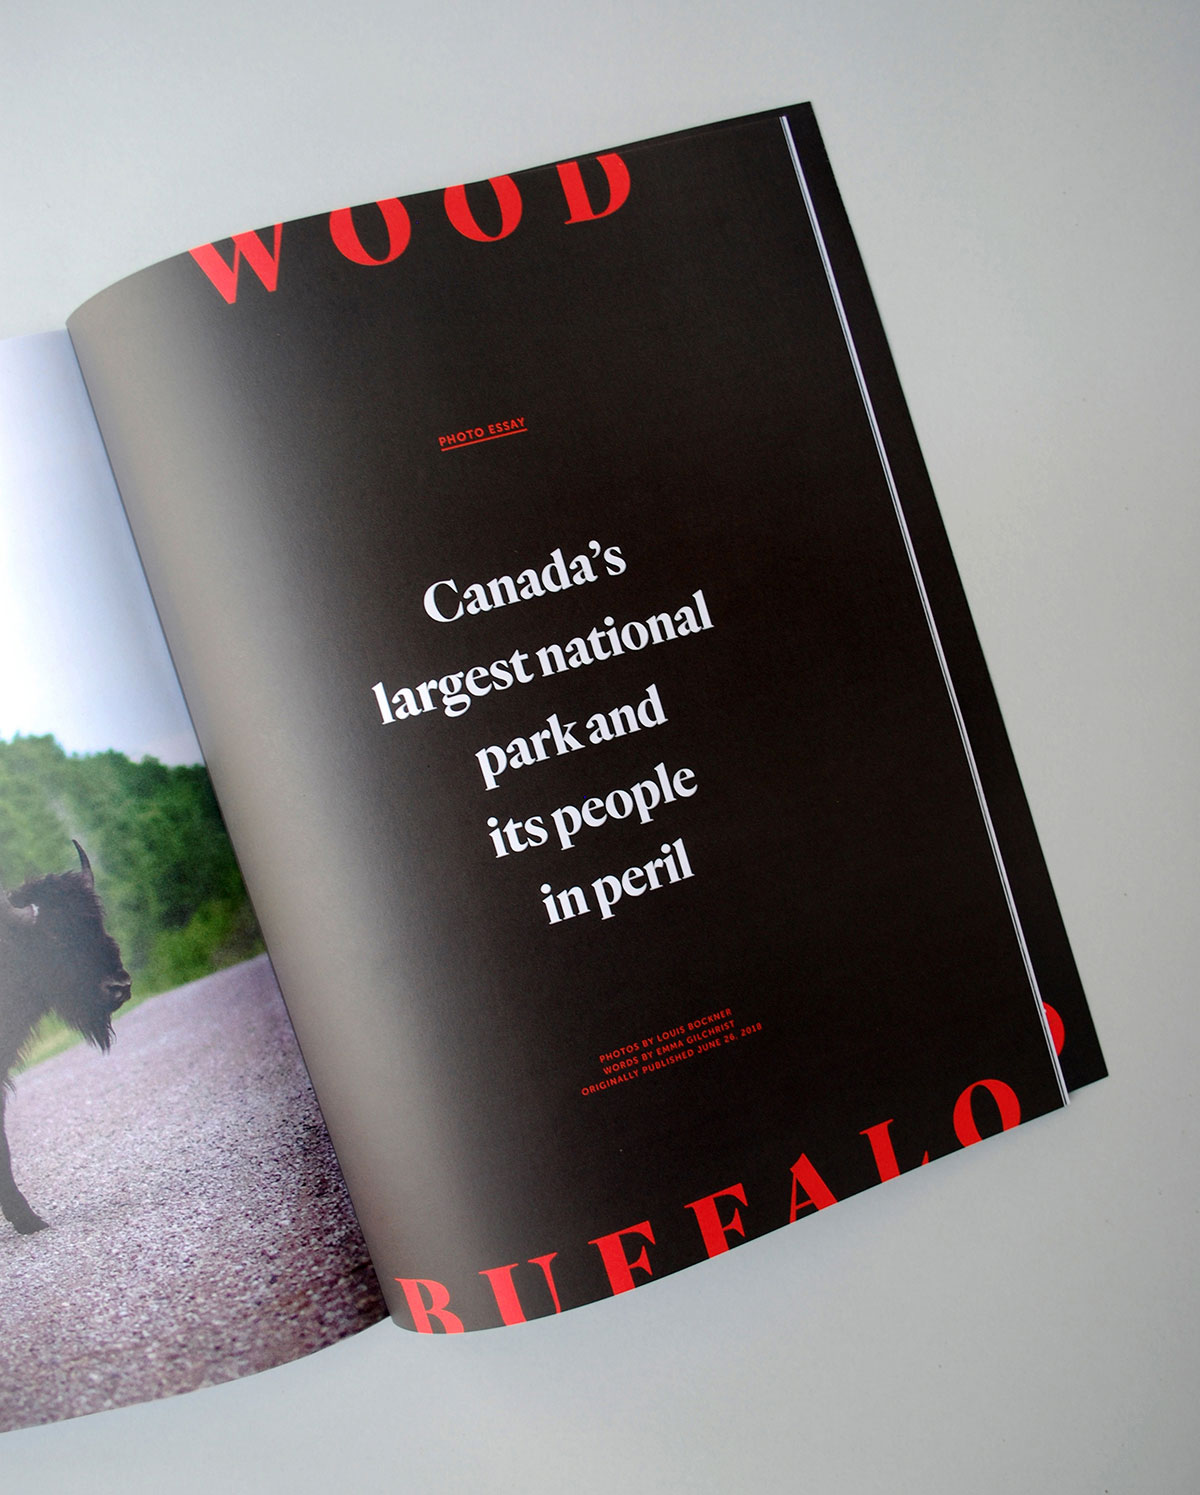 The Narwhal Magazine, photo essay introduction page, editorial print design, Wood Buffalo: Canada's largest national park and its people in peril, photos by Louis Bockner  | www.alicia-carvalho.com